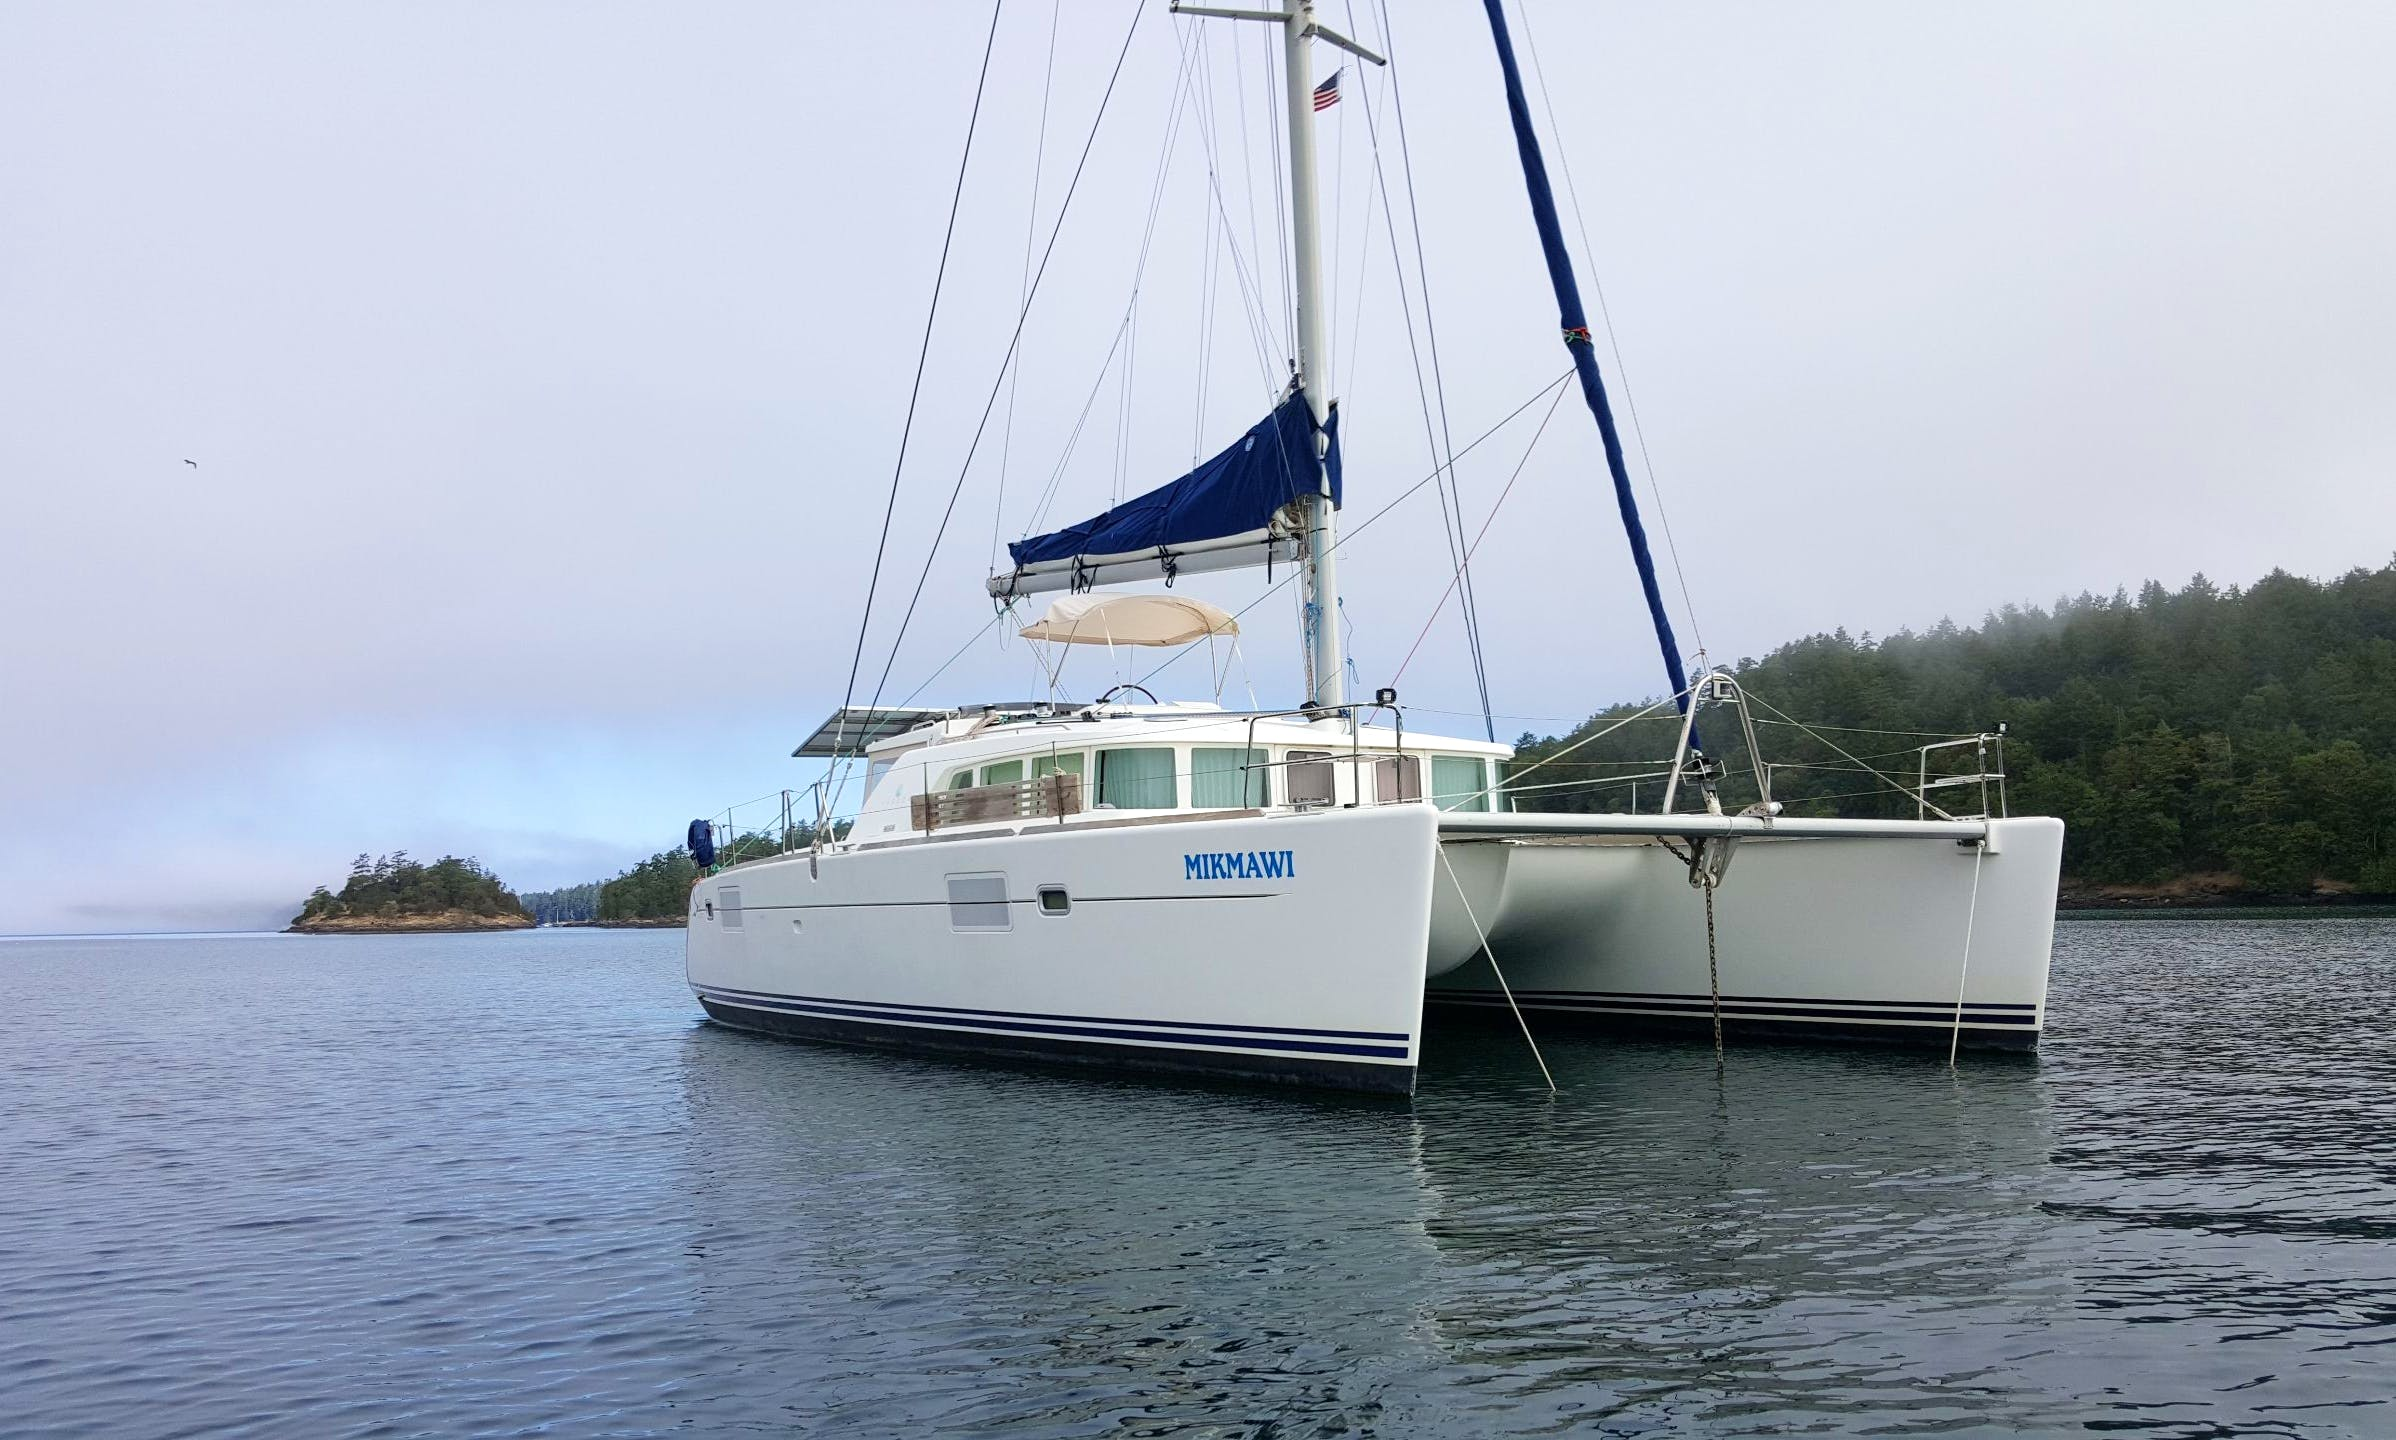 MIKMAWI CHARTERS, Cruising Catamaran rental in Seattle, Wa.